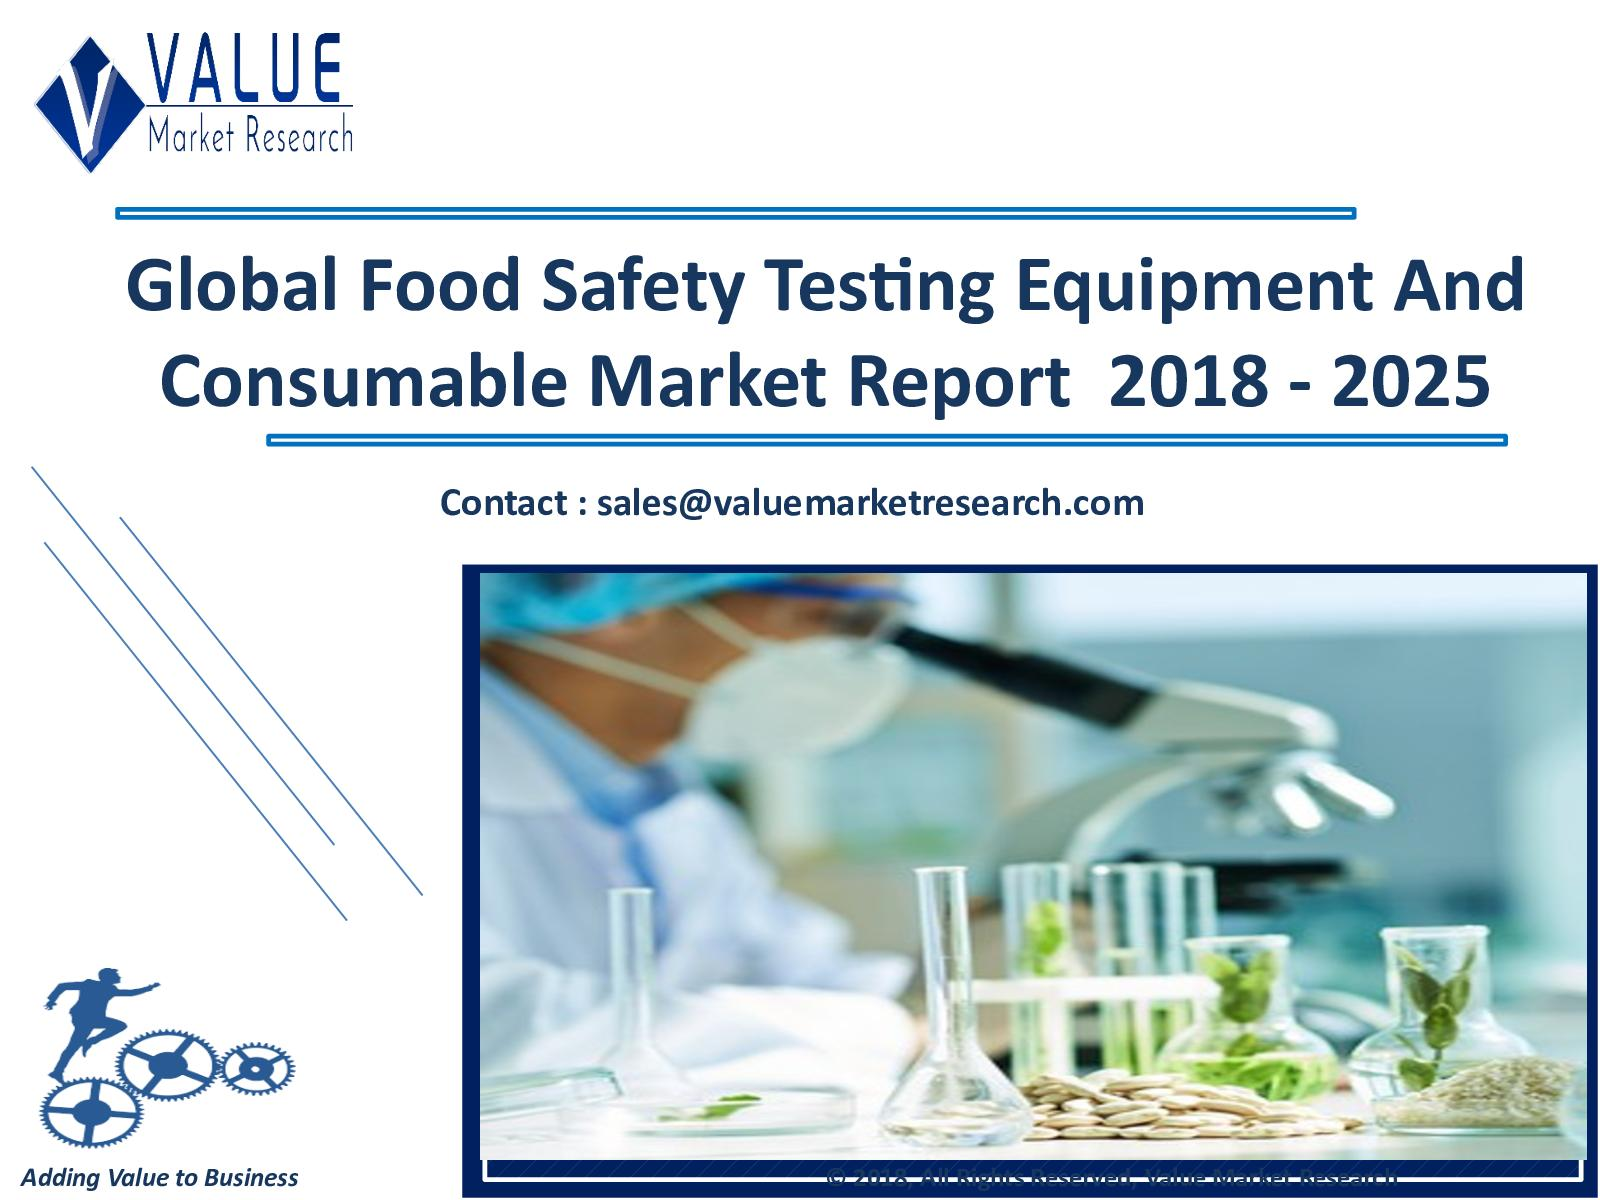 Calaméo - Food Safety Testing Equipment And Consumable